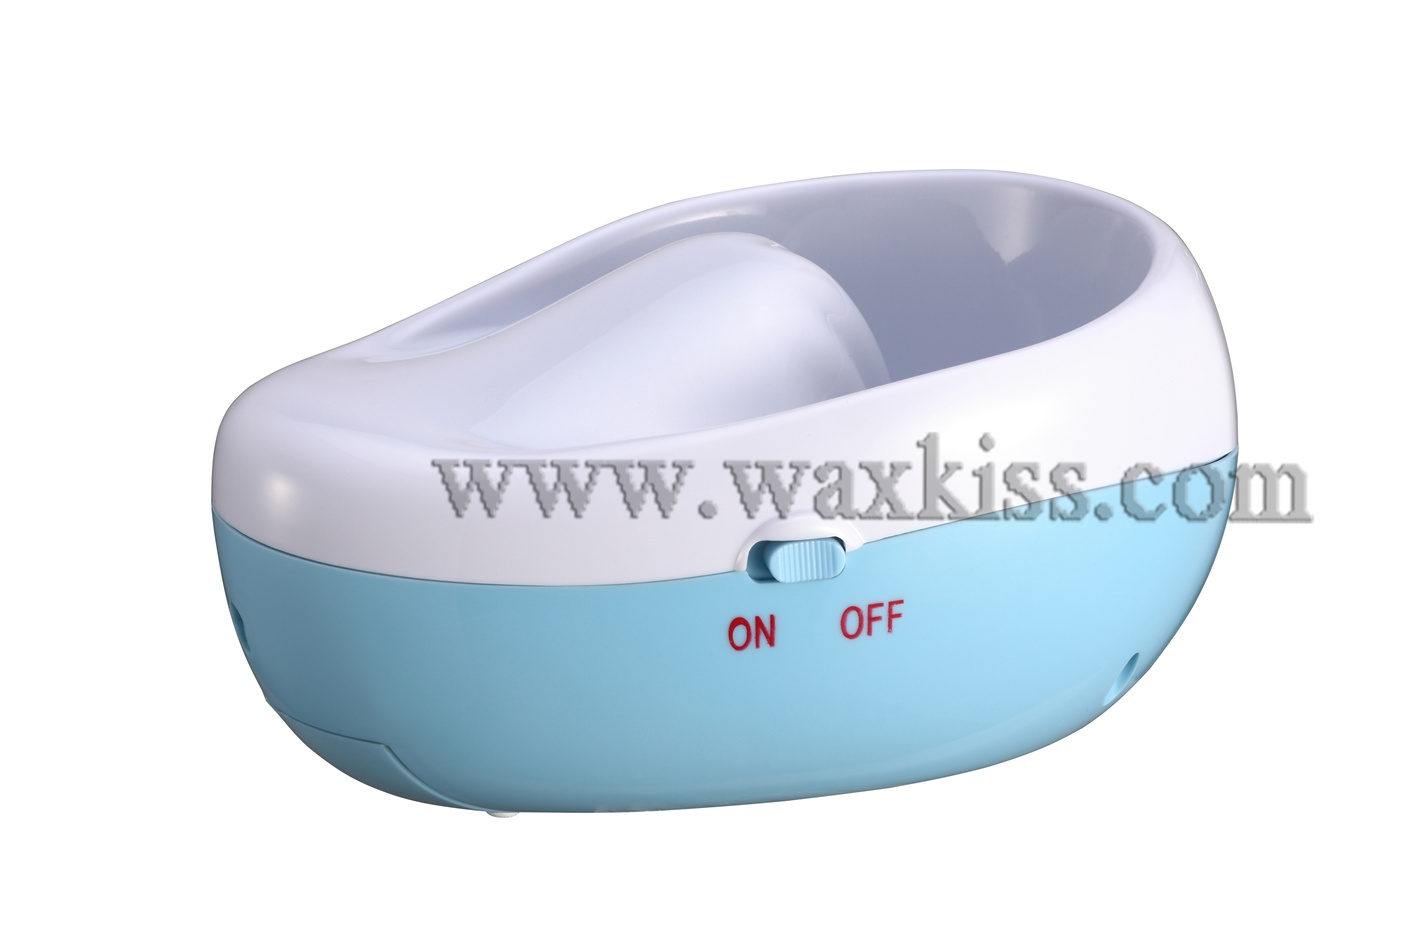 LED Light electric massage manicure finger bowl